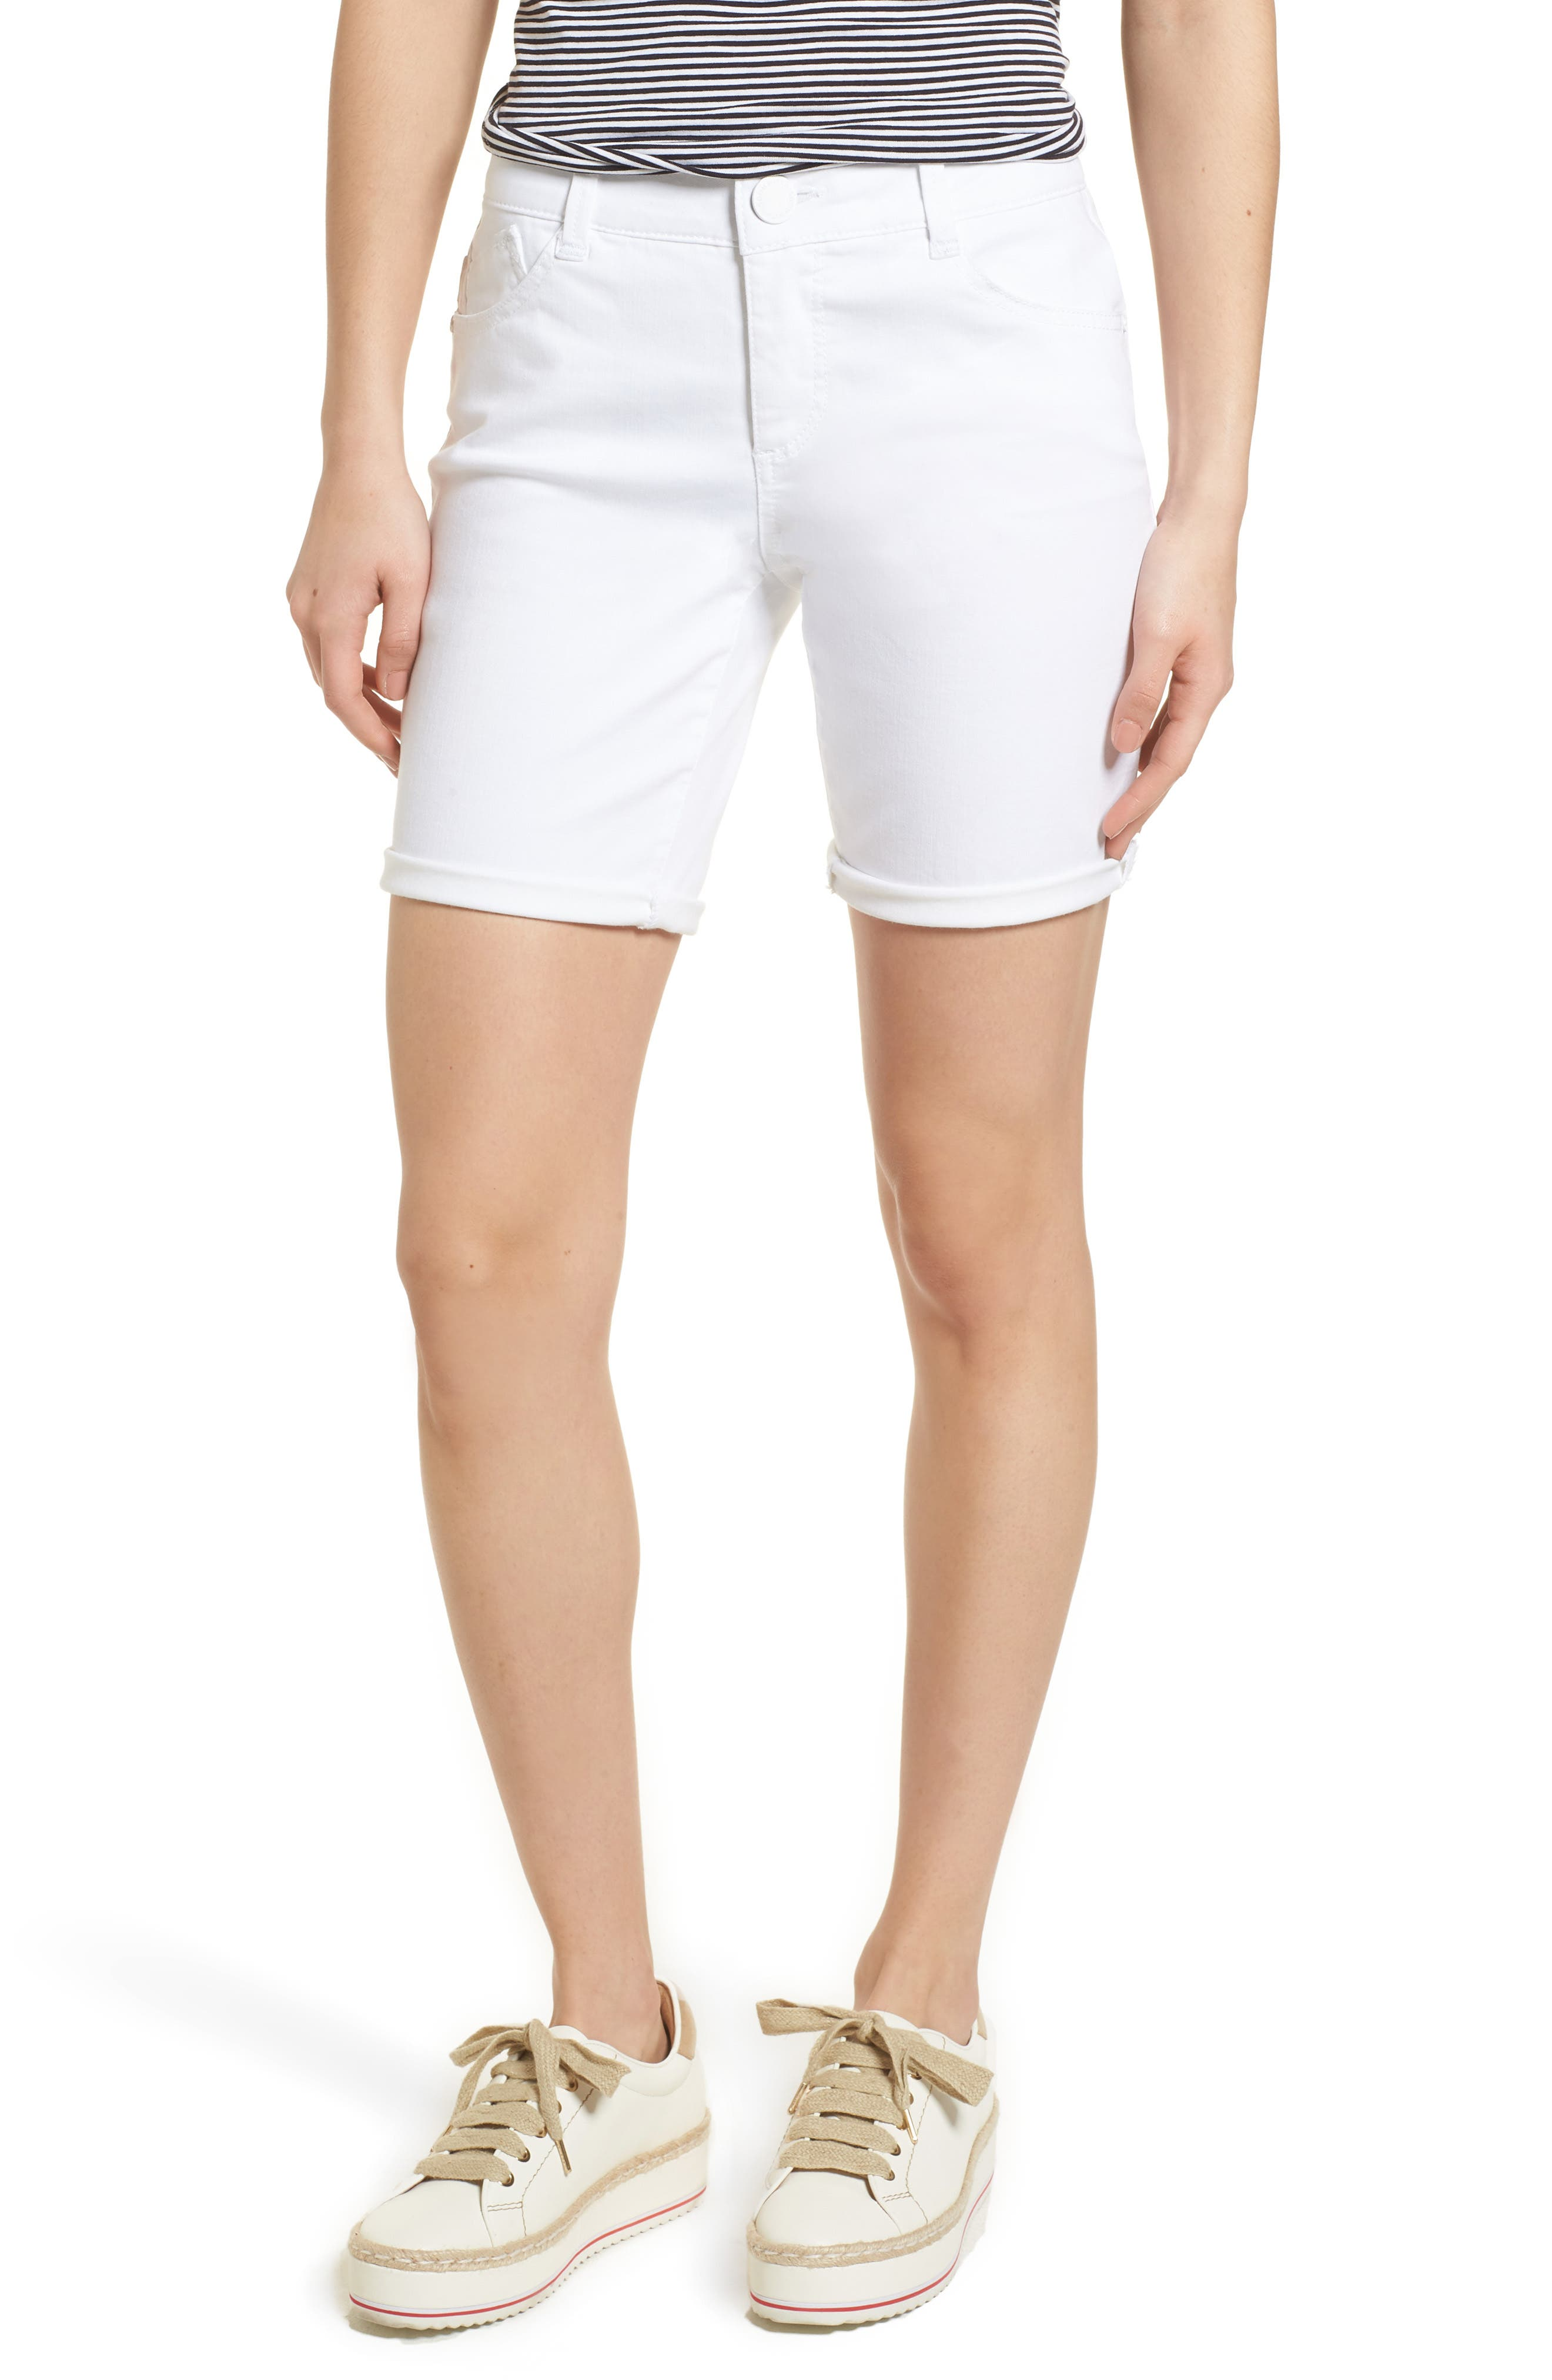 When it\\\'s time to put away the parka and slip into shorts, this pair, with exclusive mold-and-hold fit technology, is the one to live in. Style Name: Wit & Wisdom Ab-Solution White Denim Shorts (Regular & Petite) (Nordstrom Exclusive). Style Number: 5517510 1. Available in stores.